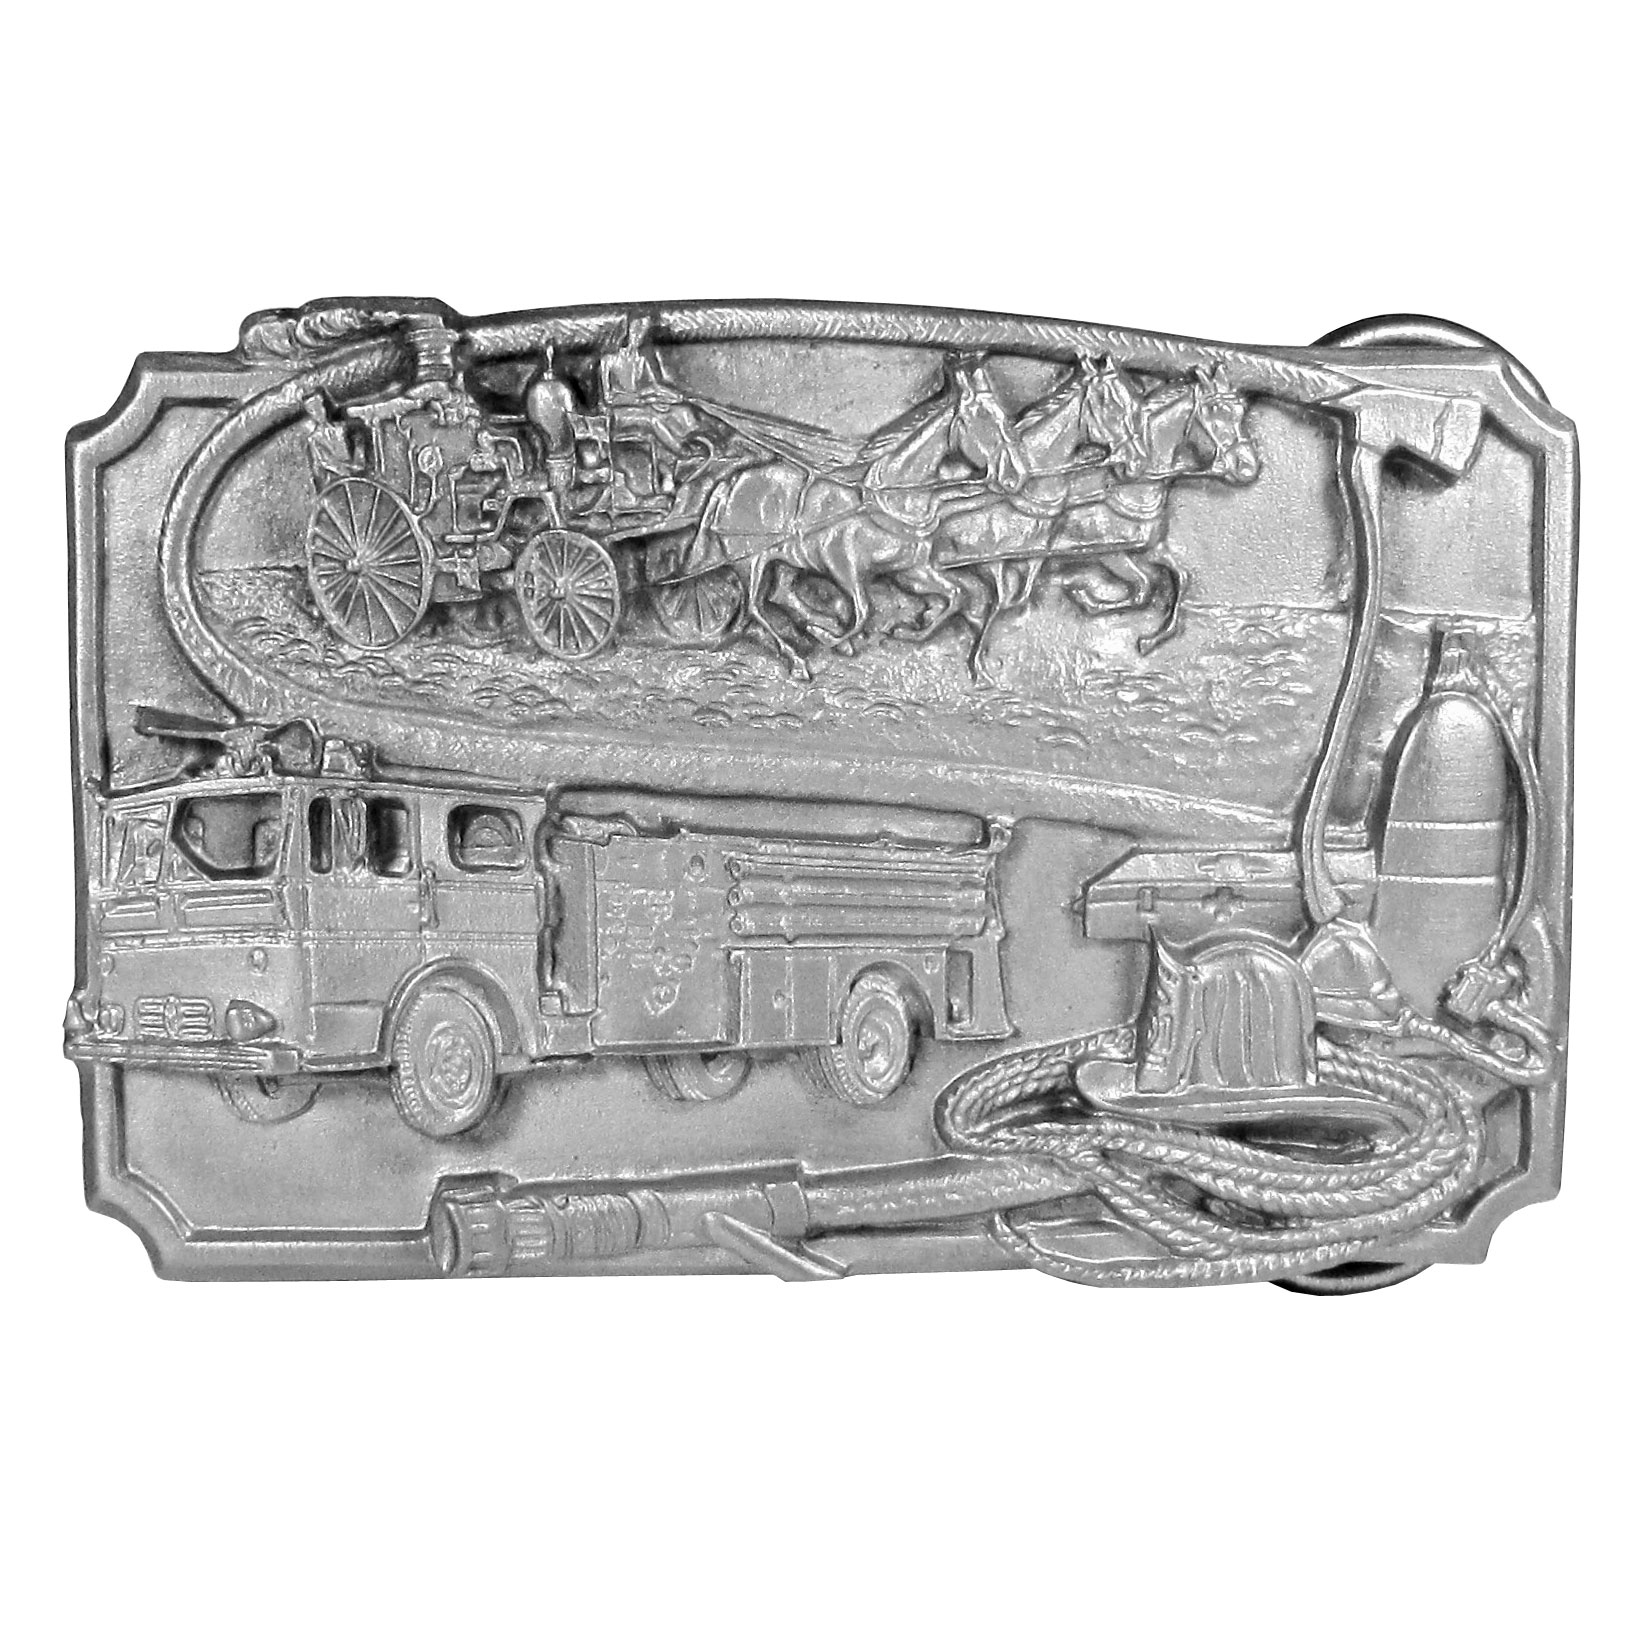 "Firefighter Antiqued Belt Buckle - ""This belt buckle celebrates firefighters.  There is an old-fashioned, horse drawn fire wagon on the top with a new fire truck below it.  There is also a medical kit, an oxygen tank, an axe, a firefighter hat and a fire hose.  On the back are the words, """"Firefighters have always performed a valuable service in their communities.  Today their job is even more dangerous and demanding.  This buckle is dedicated to firefighters everywhere, past and present."""""""